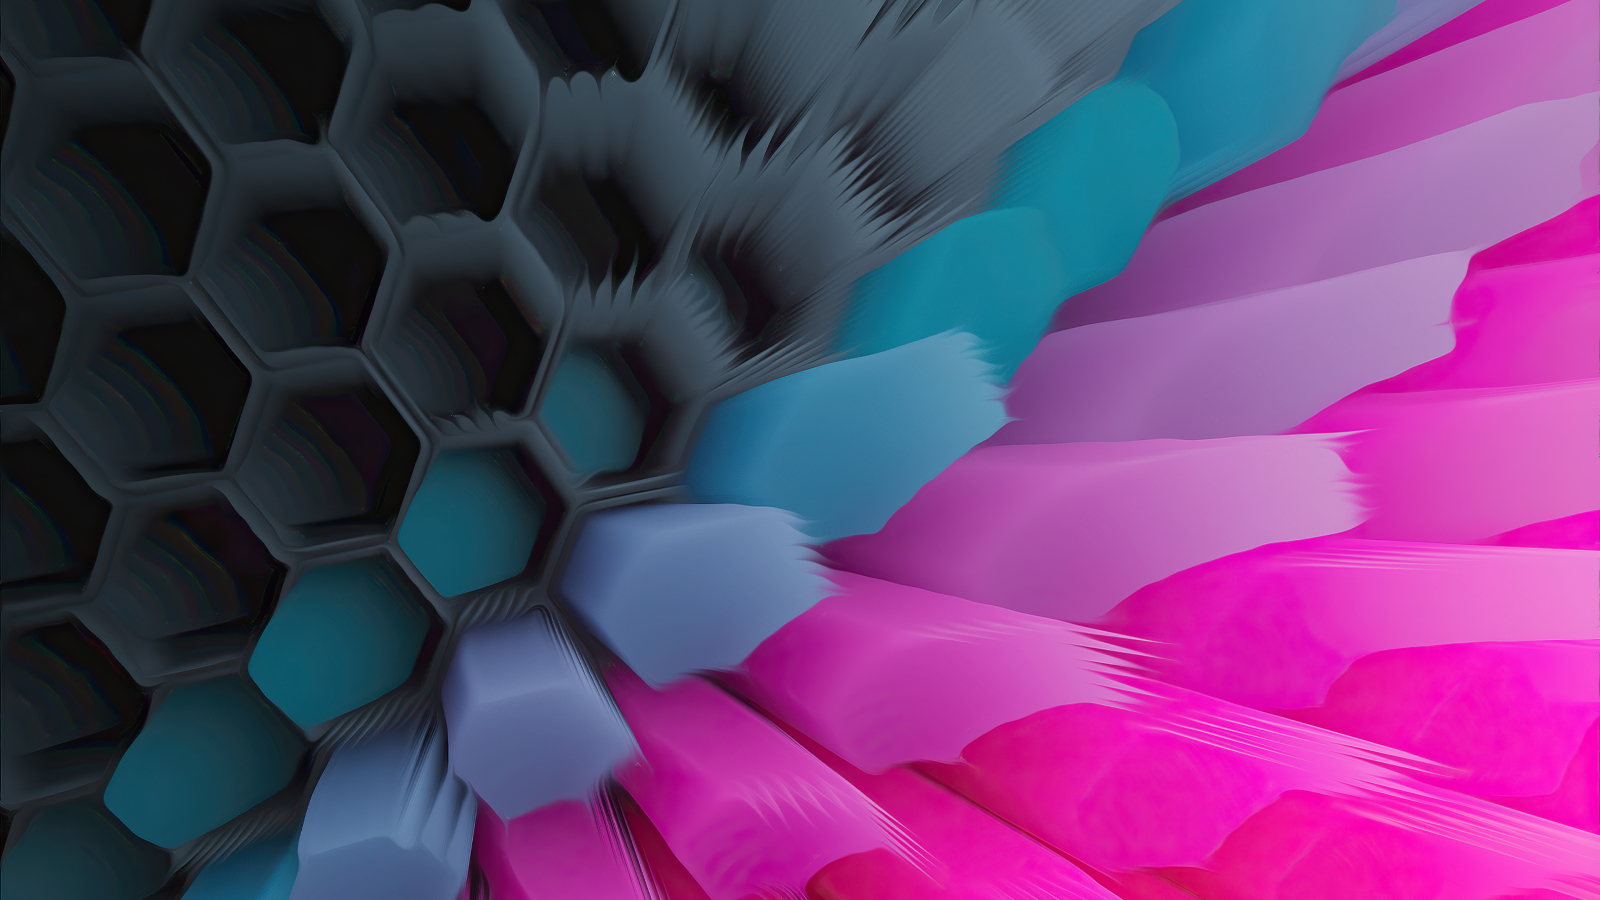 Pink Blue 4K Hexagon Wallpaper in 1600x900 Resolution